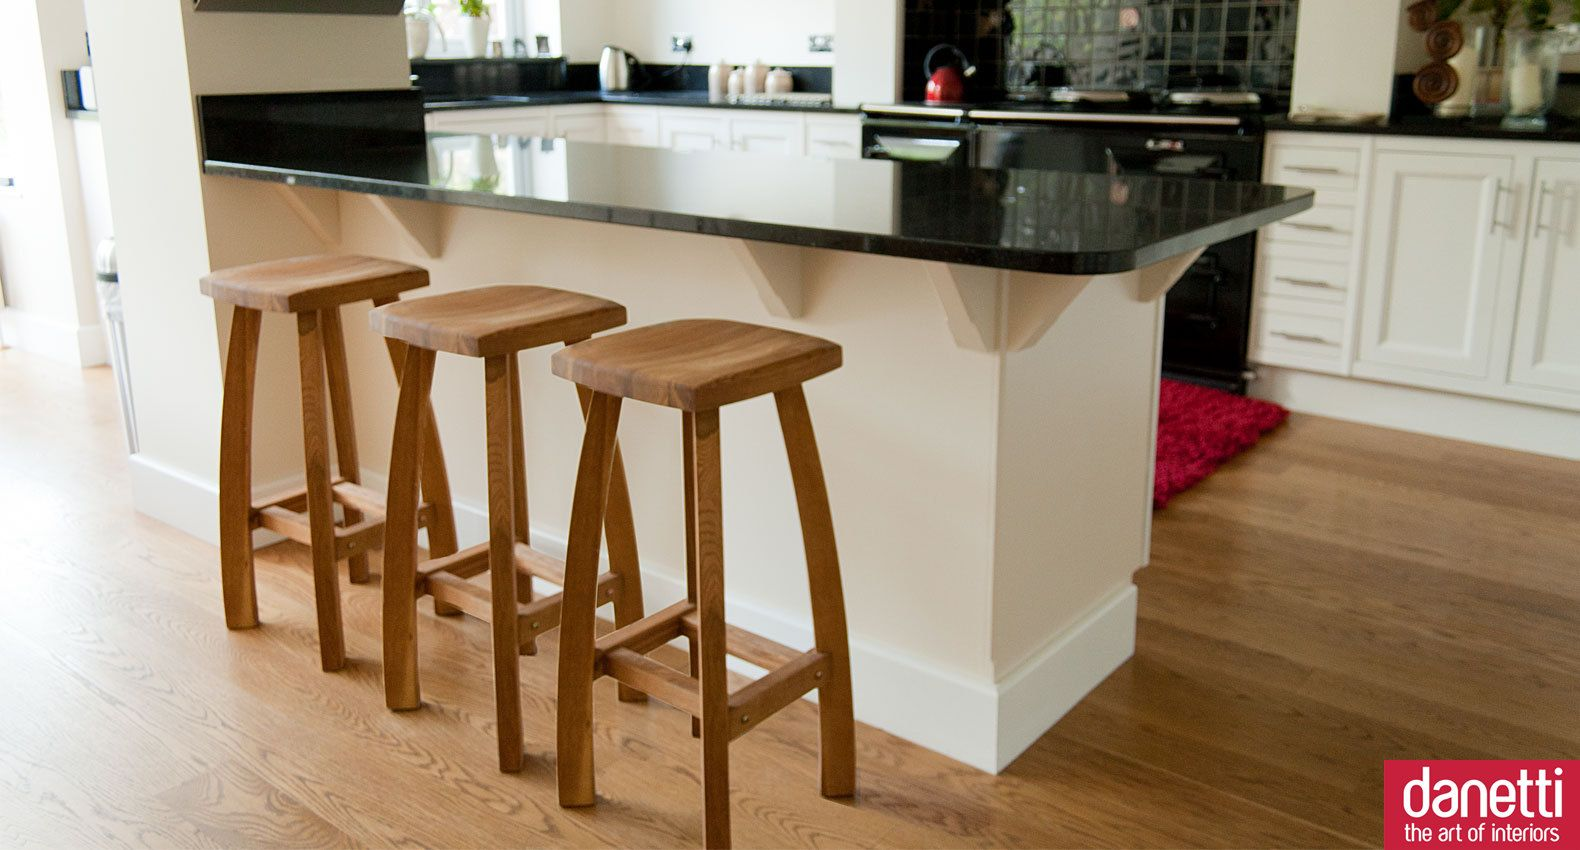 Oak Bar Stool Oak Bar Stools Shaker Style Kitchens And Breakfast Bar Stools